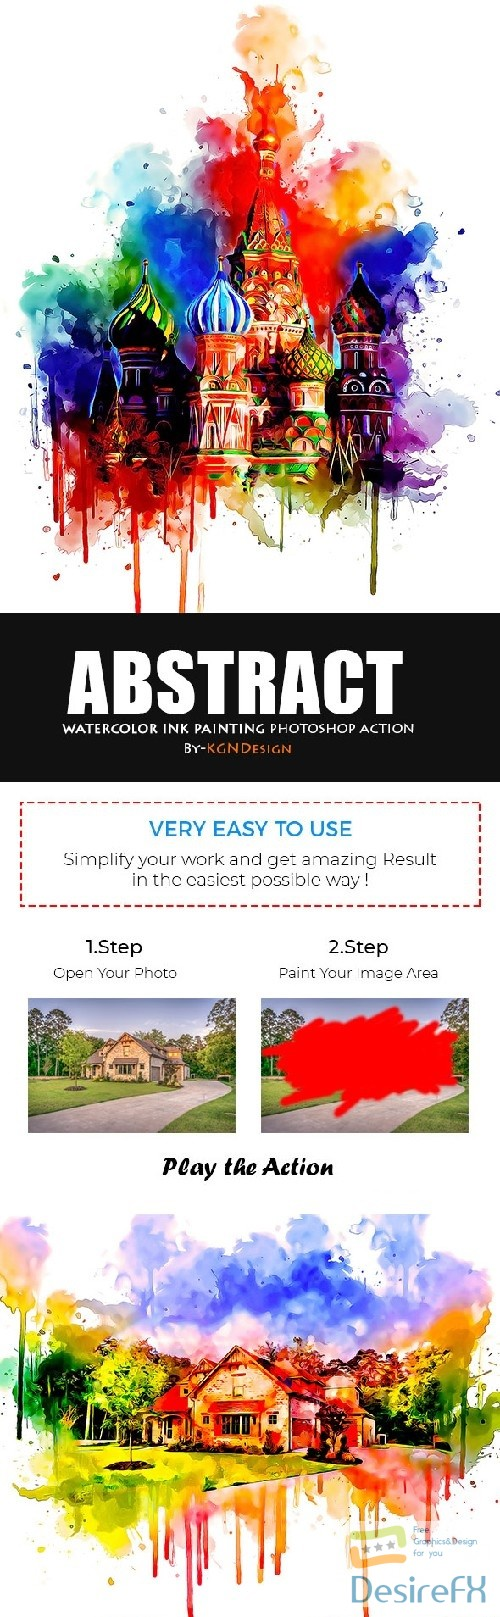 actions-atn - Abstract Watercolor Ink Painting Photoshop Action 22415219